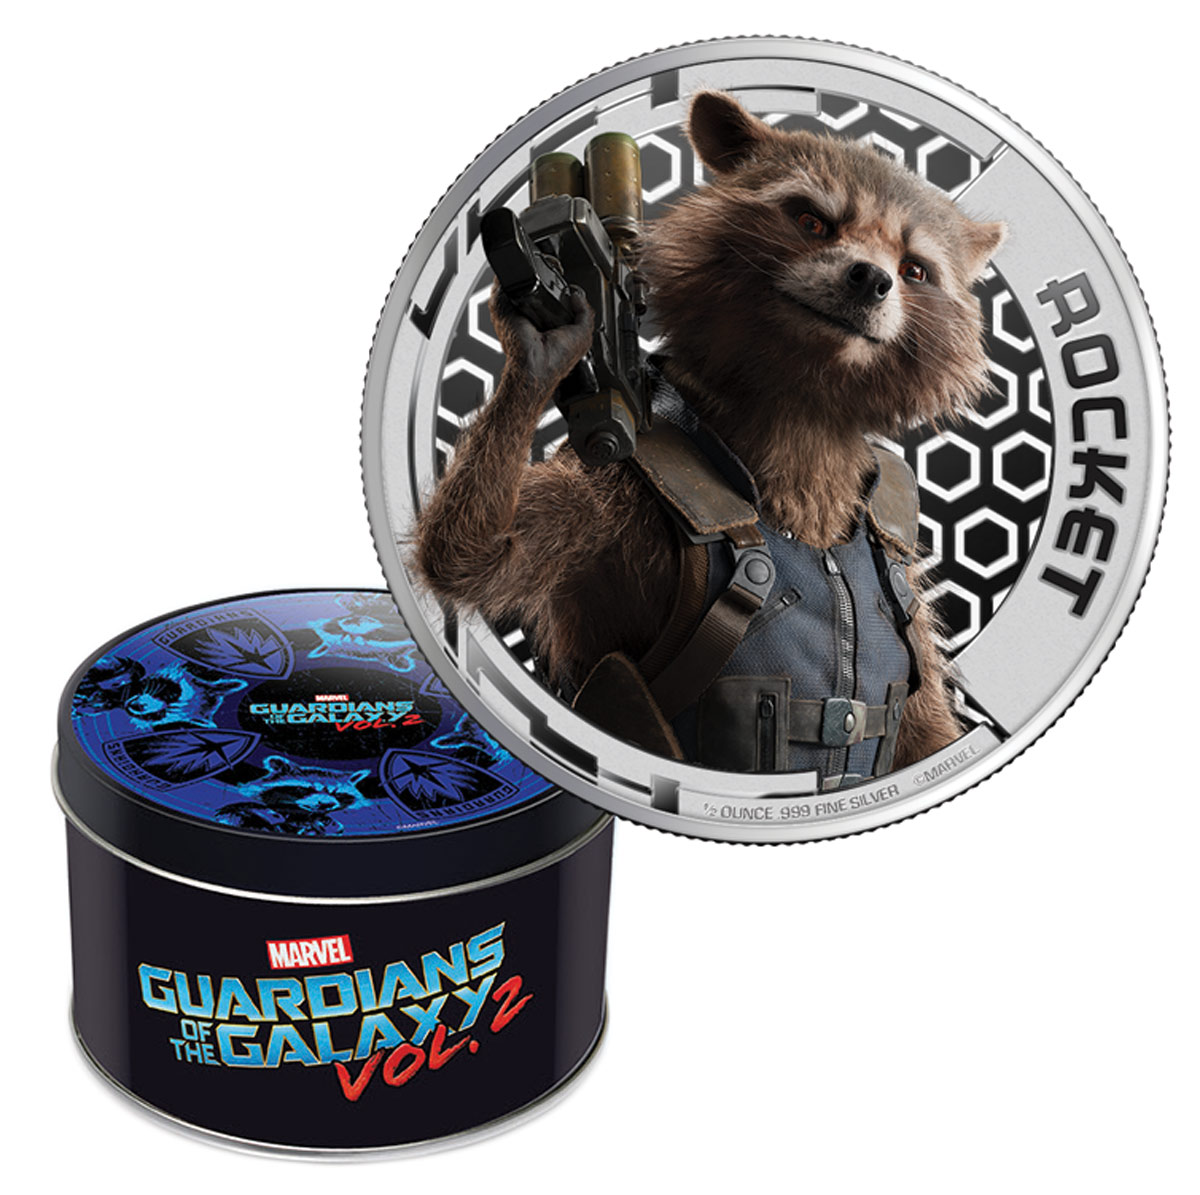 2017 Cook Islands Marvel Guardians of the Galaxy - Rocket 1/2 oz Silver Colorized Proof $2 Coin GEM Proof (OGP)